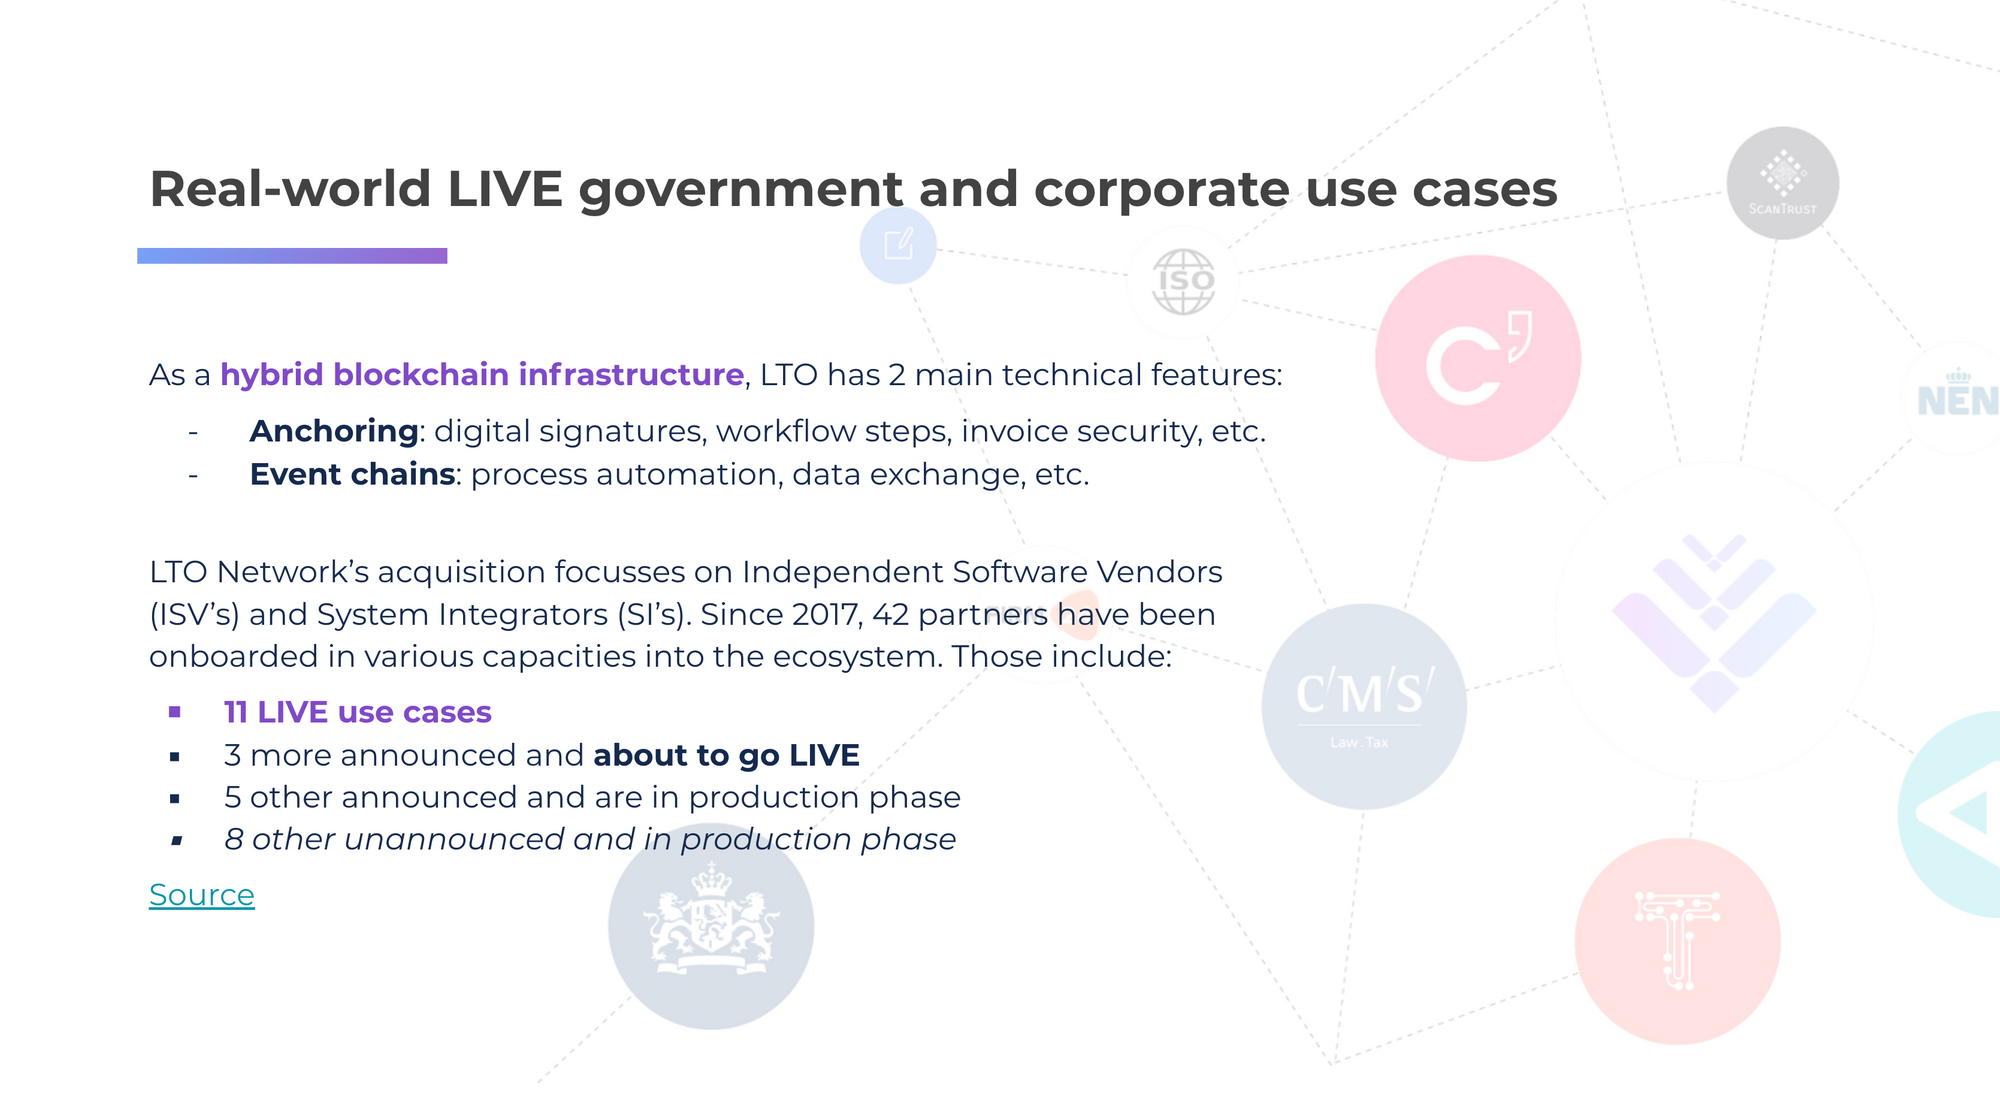 See the list of use cases: https://www.ltonetwork.com/use-cases